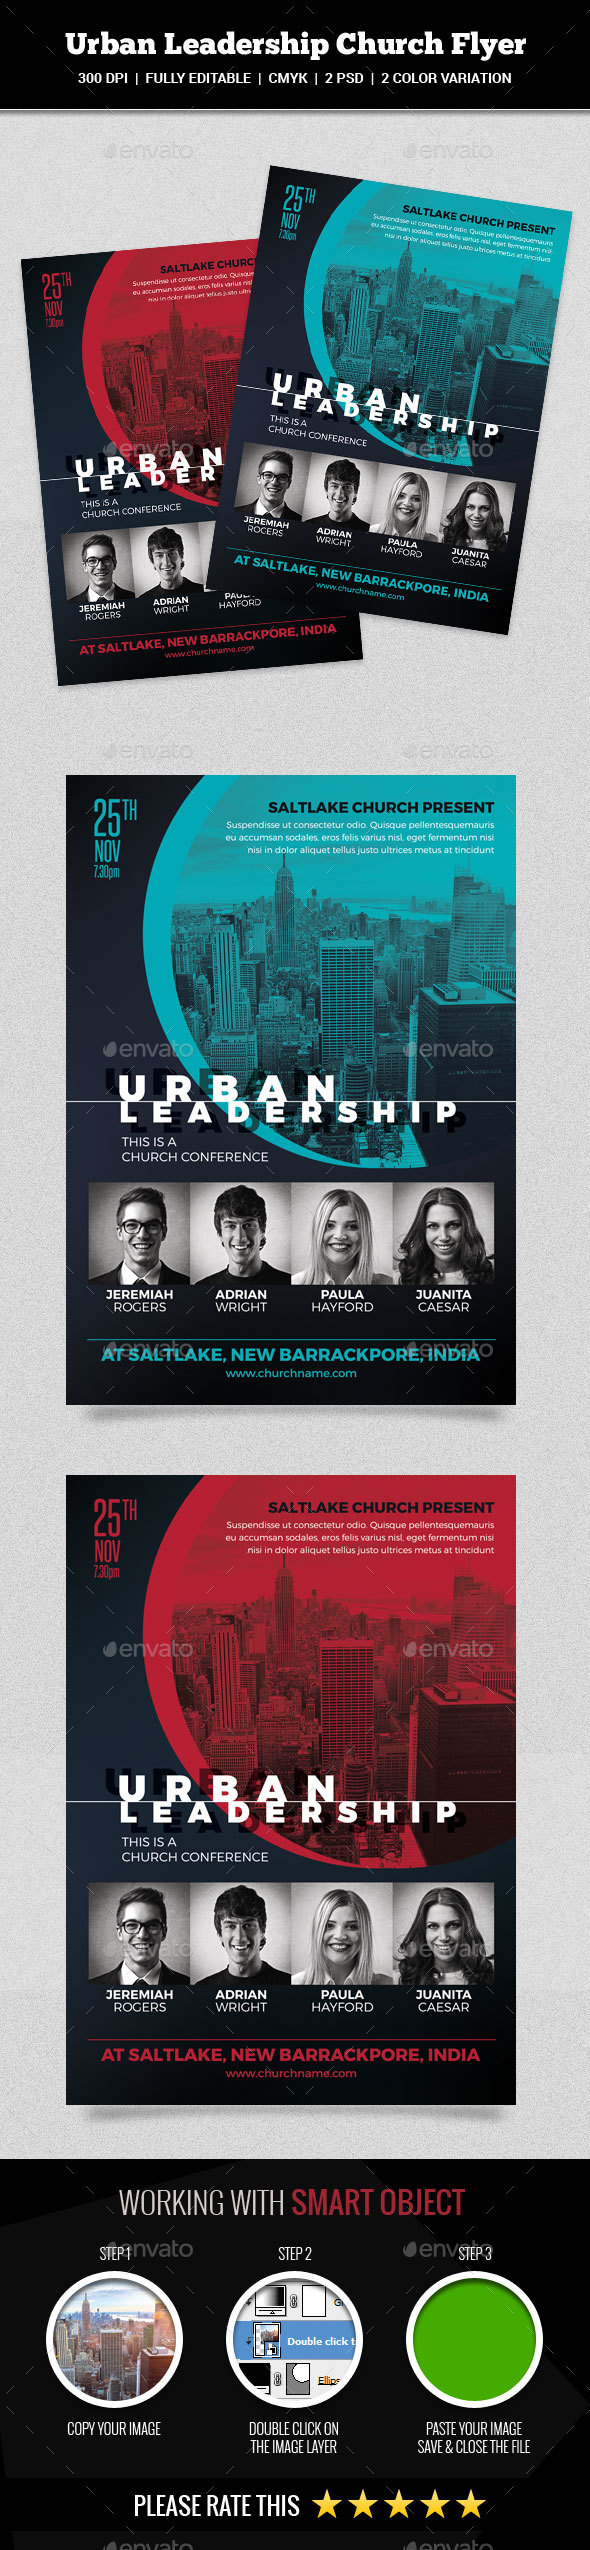 Urban Leadership Church Flyer - Church Flyers